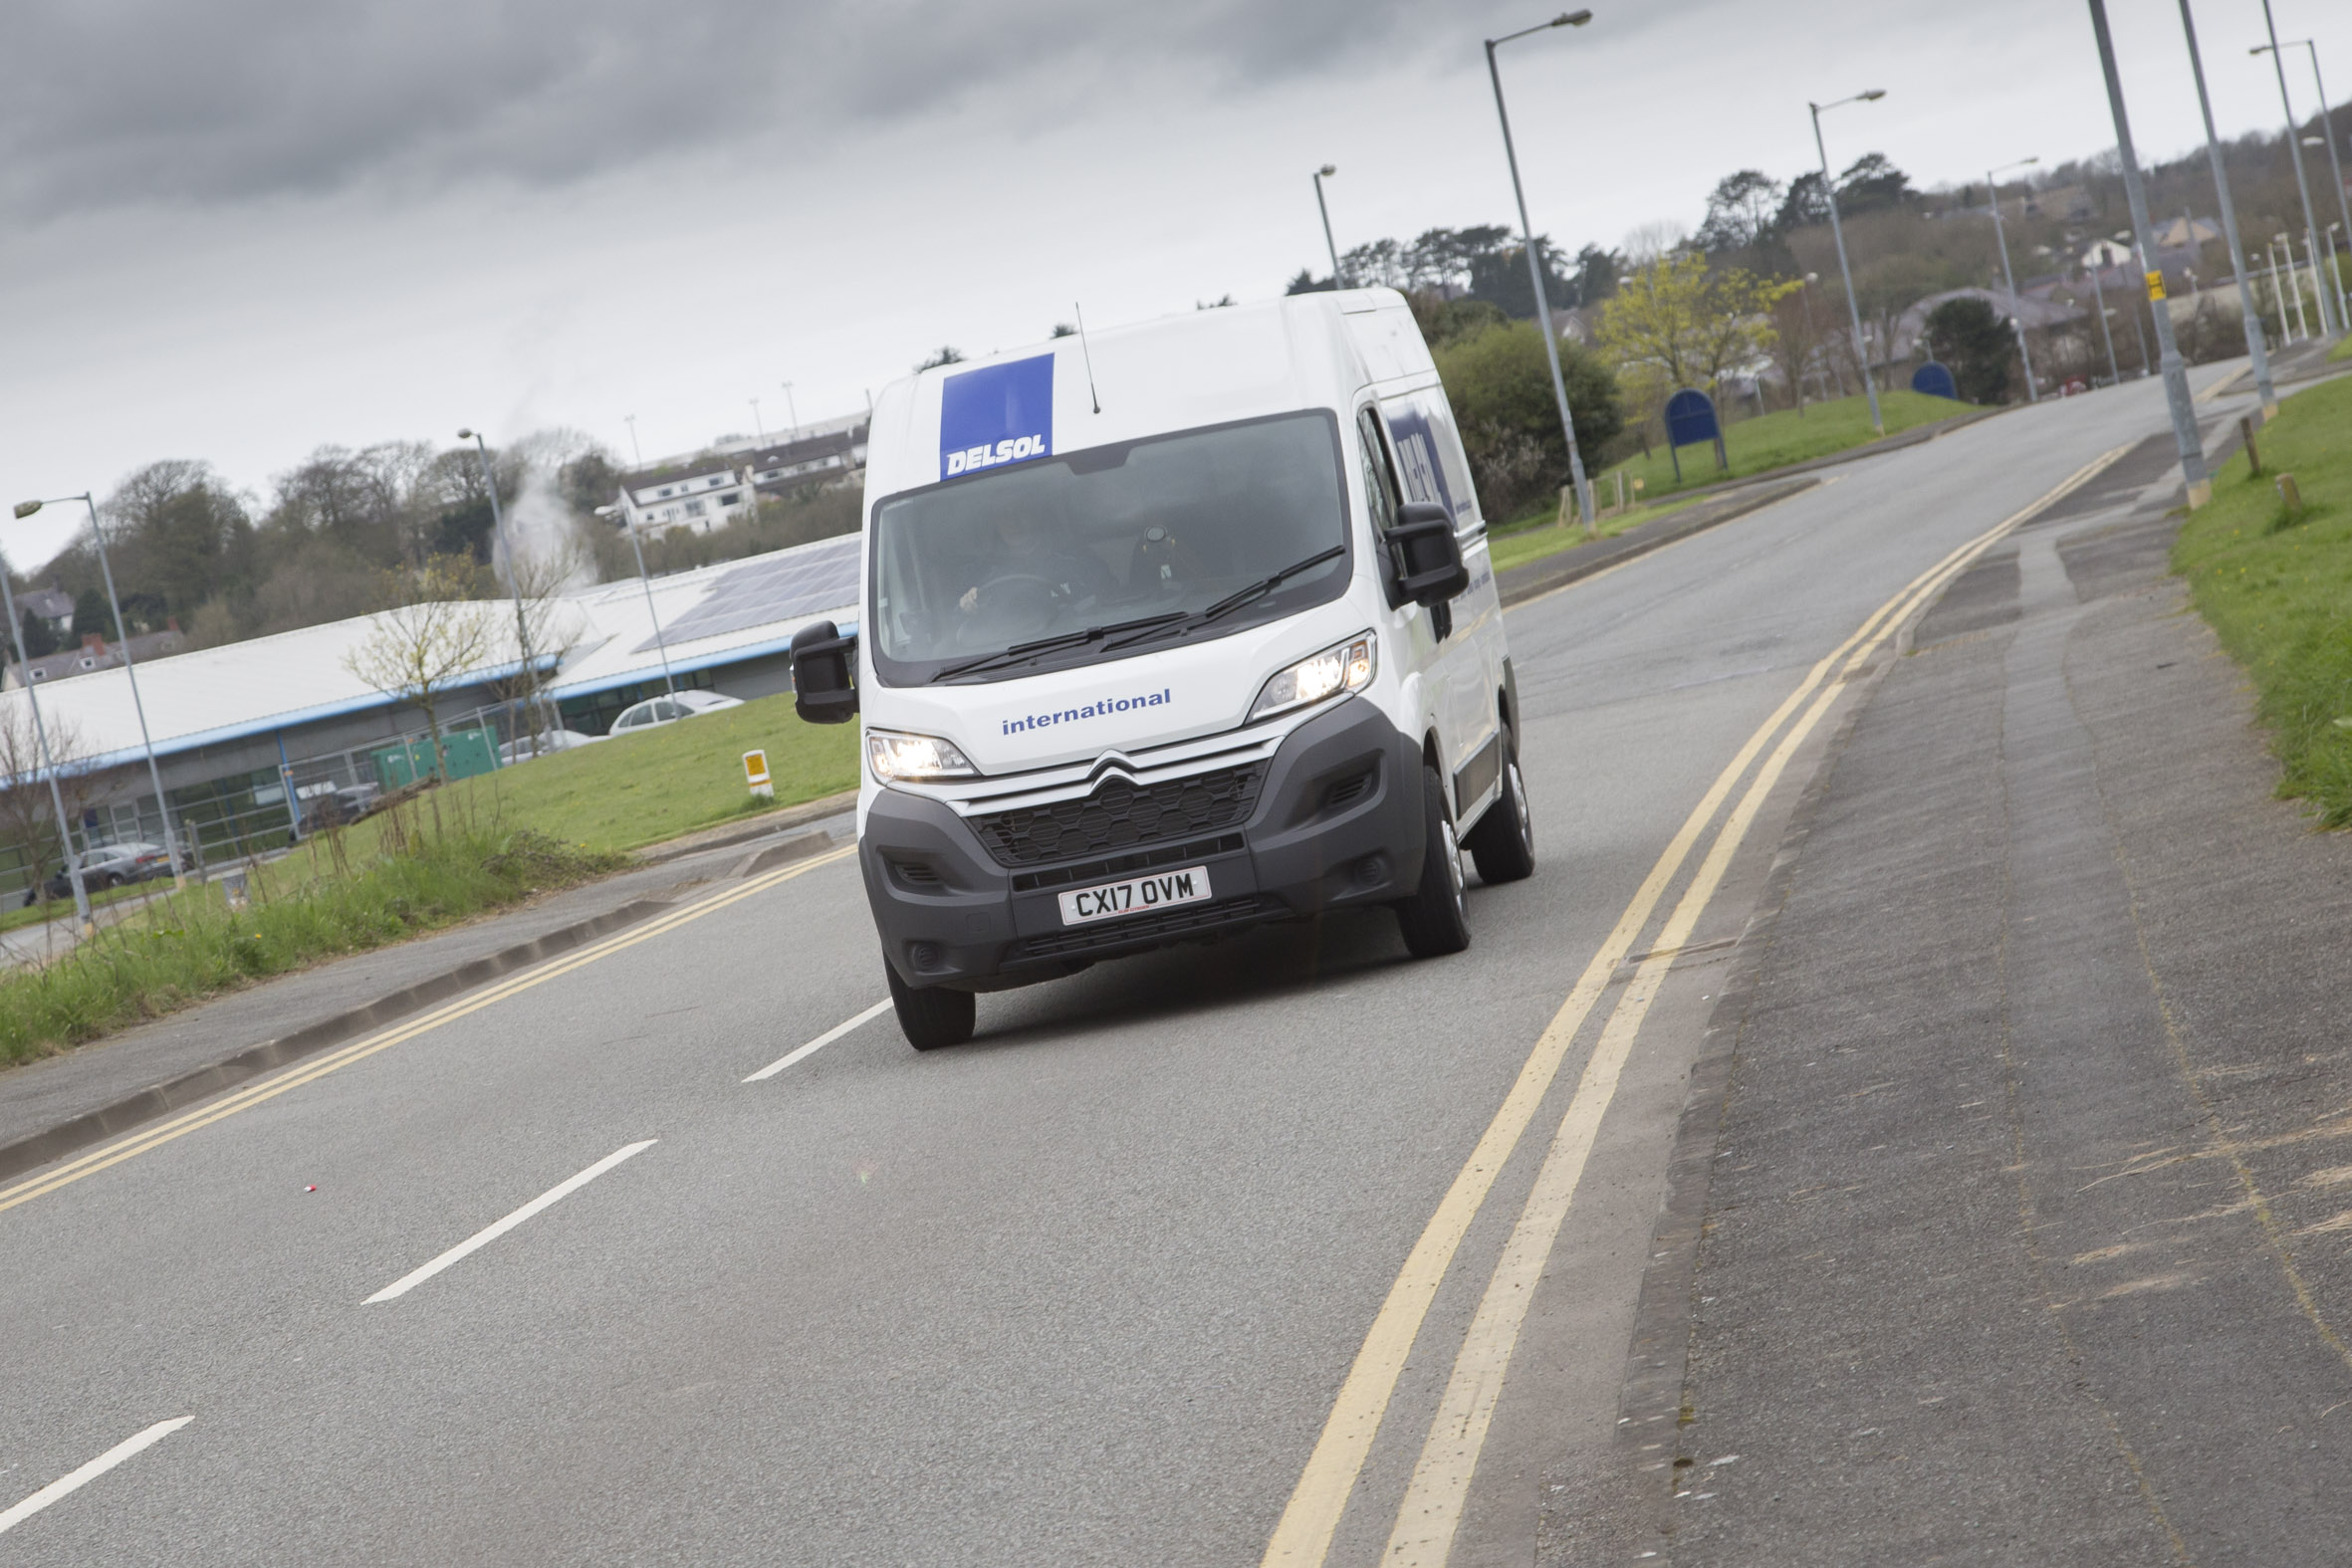 Delivery company Delsol invests £300,000 in fleet of vans from Anglesey dealership